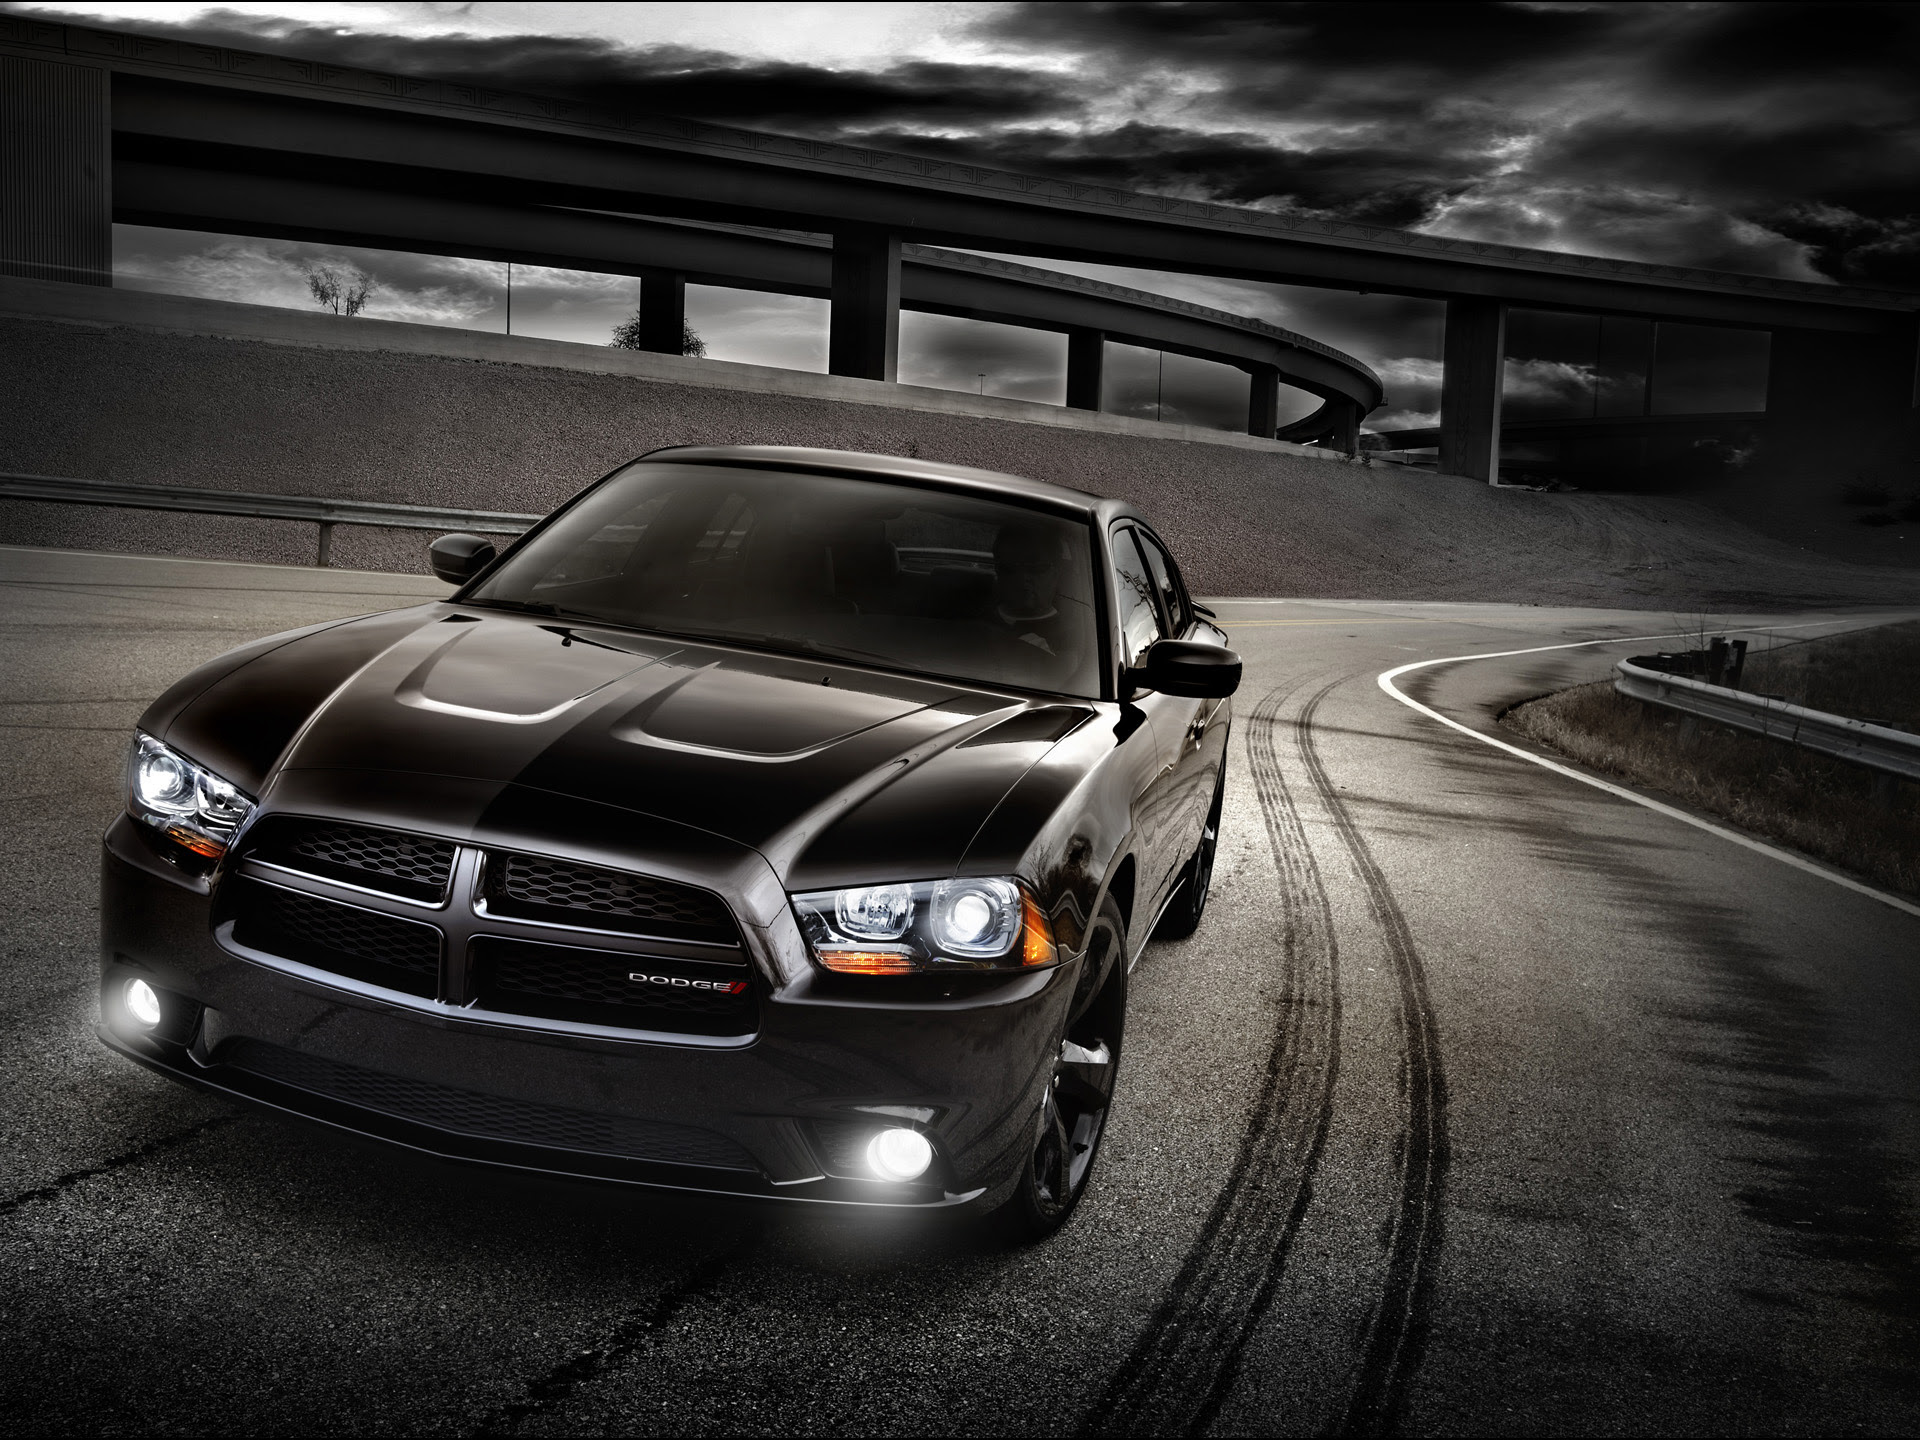 Dodge Charger Wallpaper 1920x1440 75843